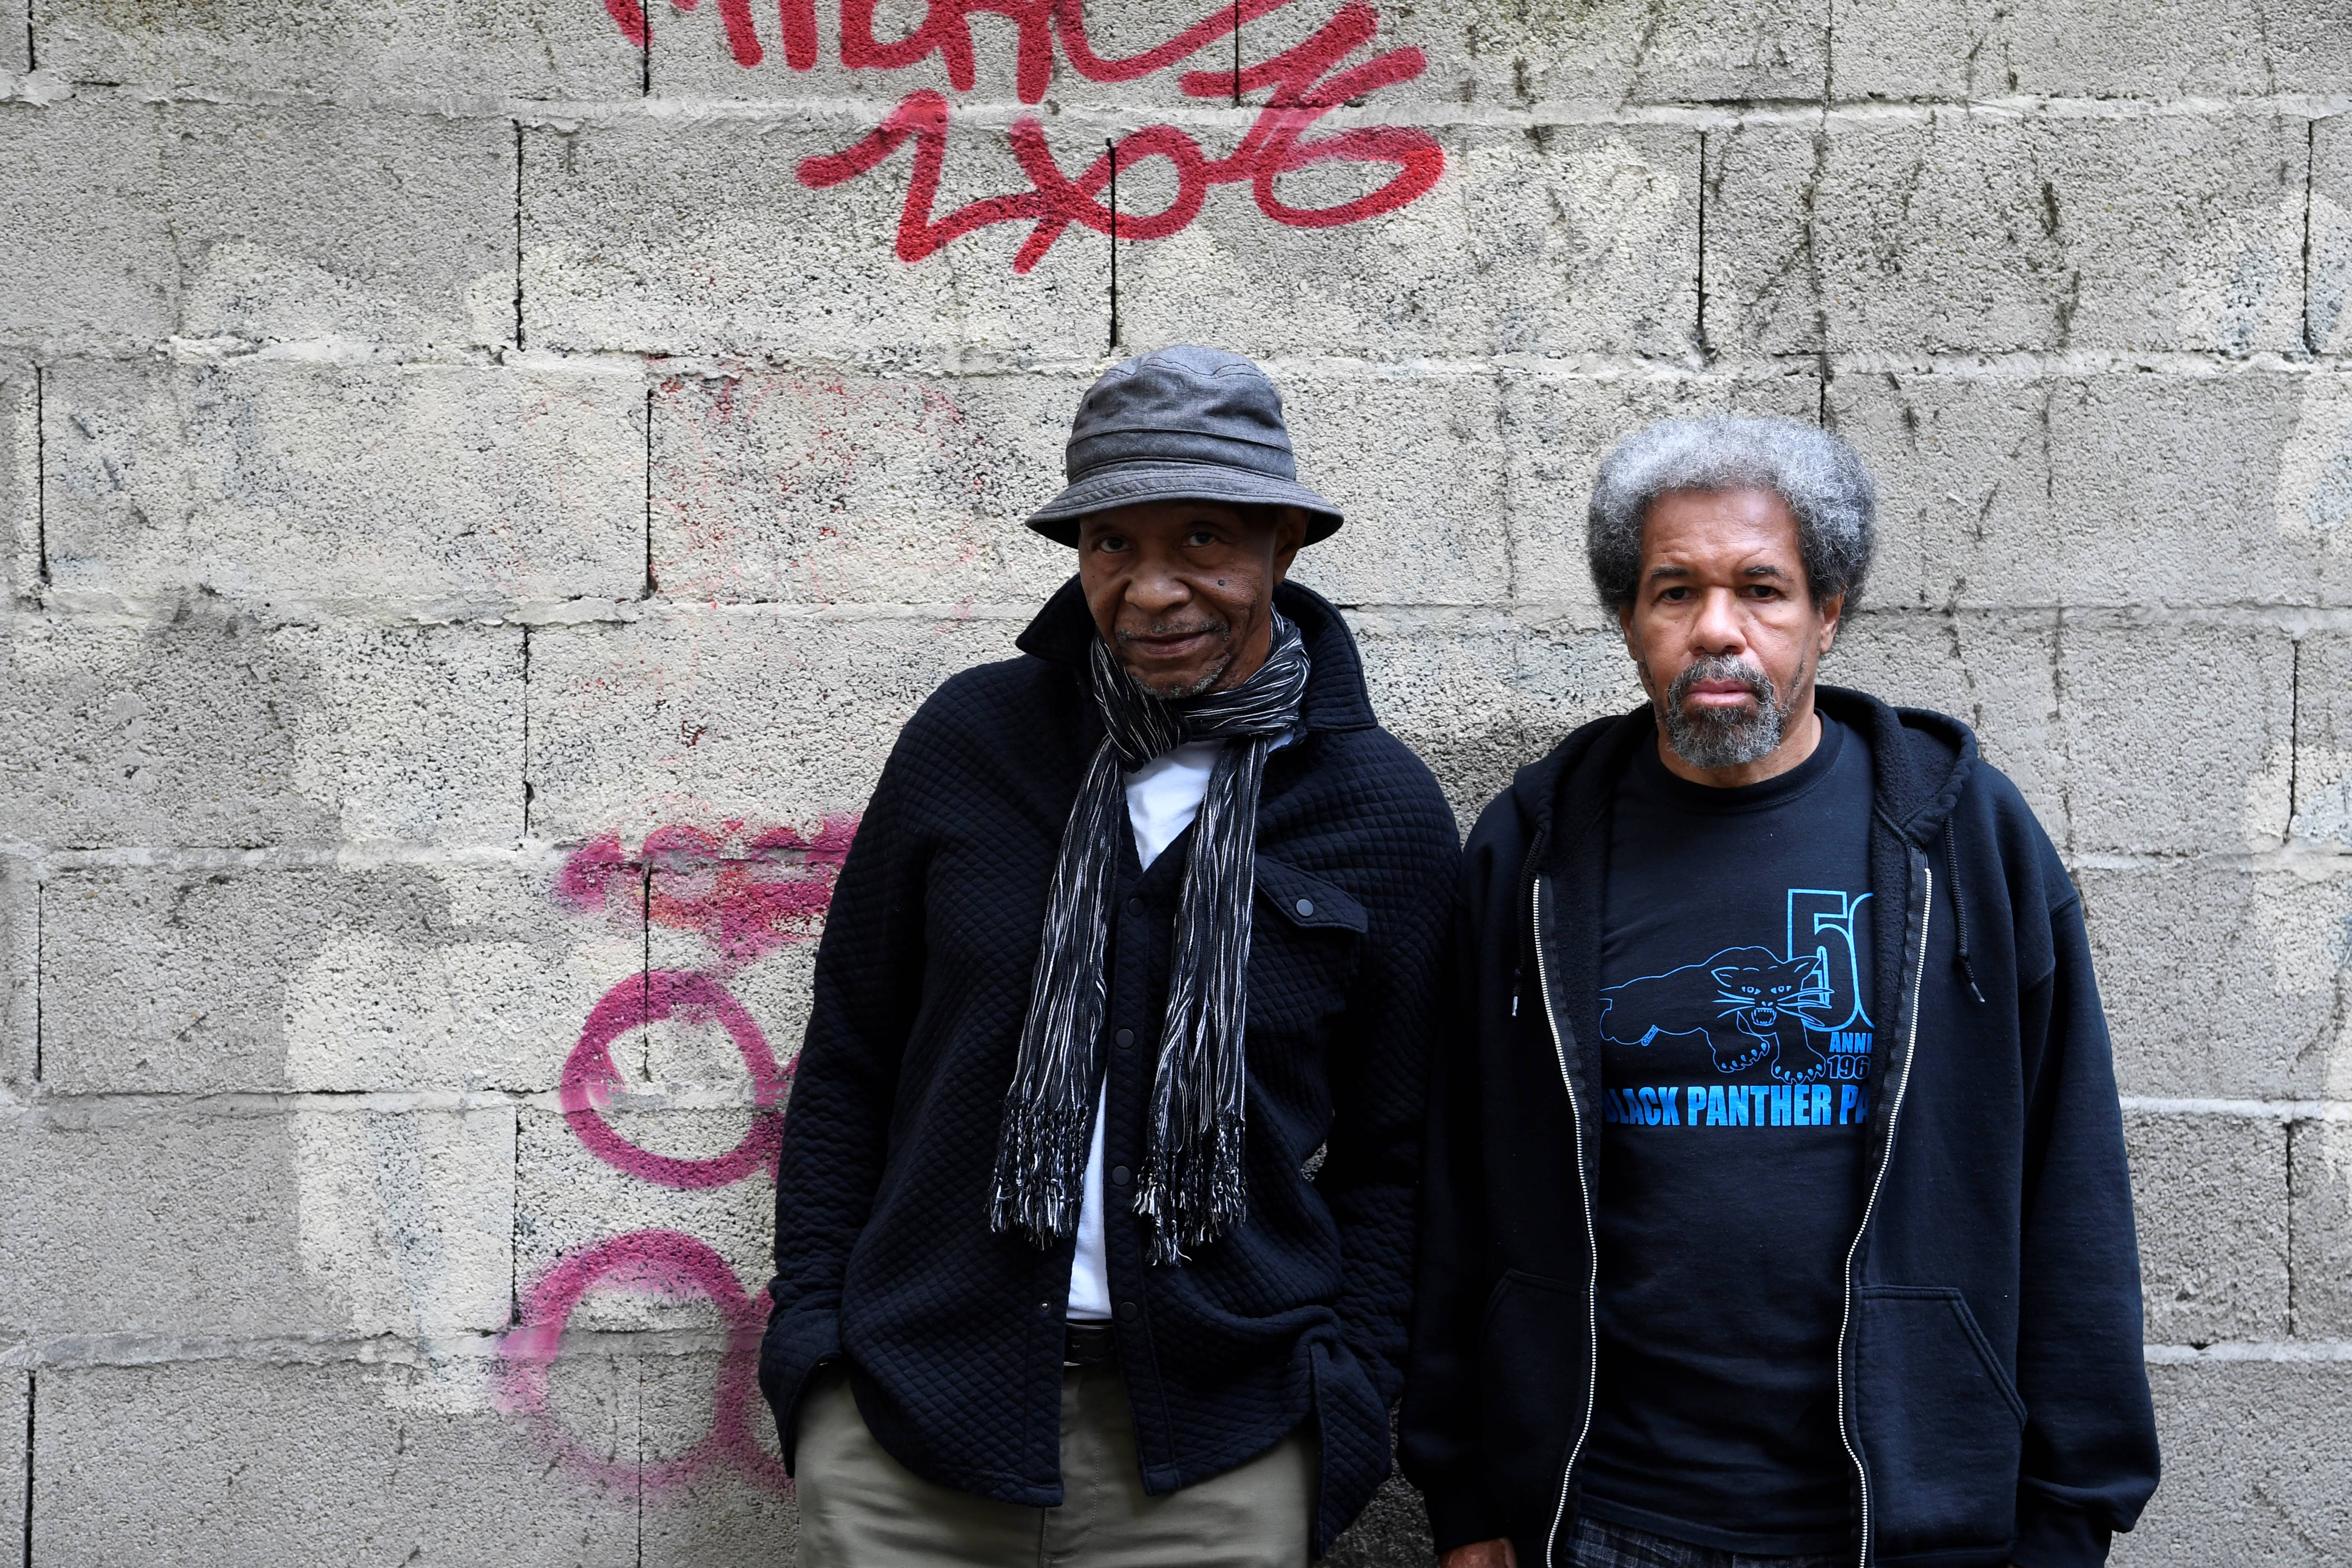 Former Louisiana State Penitentiary prisoners Robert King (R) and Albert Woodfox (L) pose prior to a press conference on Nov. 15, 2016 in Paris.